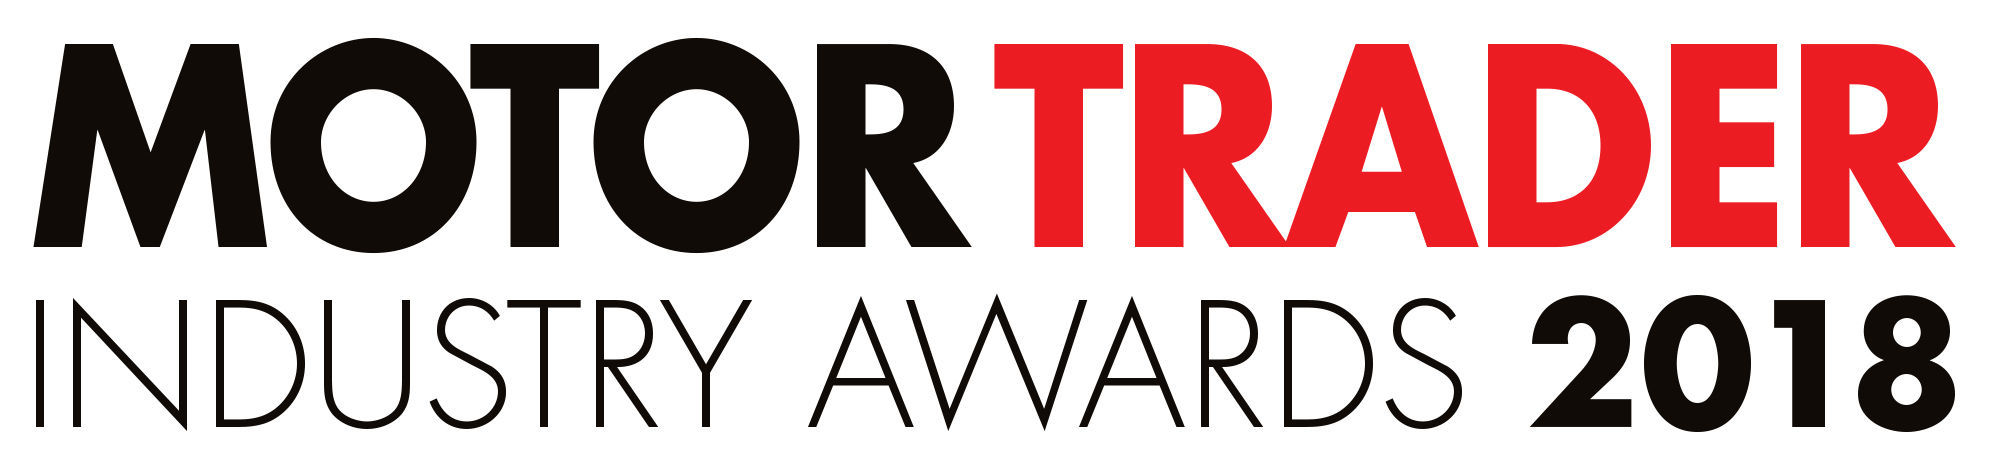 Motor Trader Industry Awards 2018